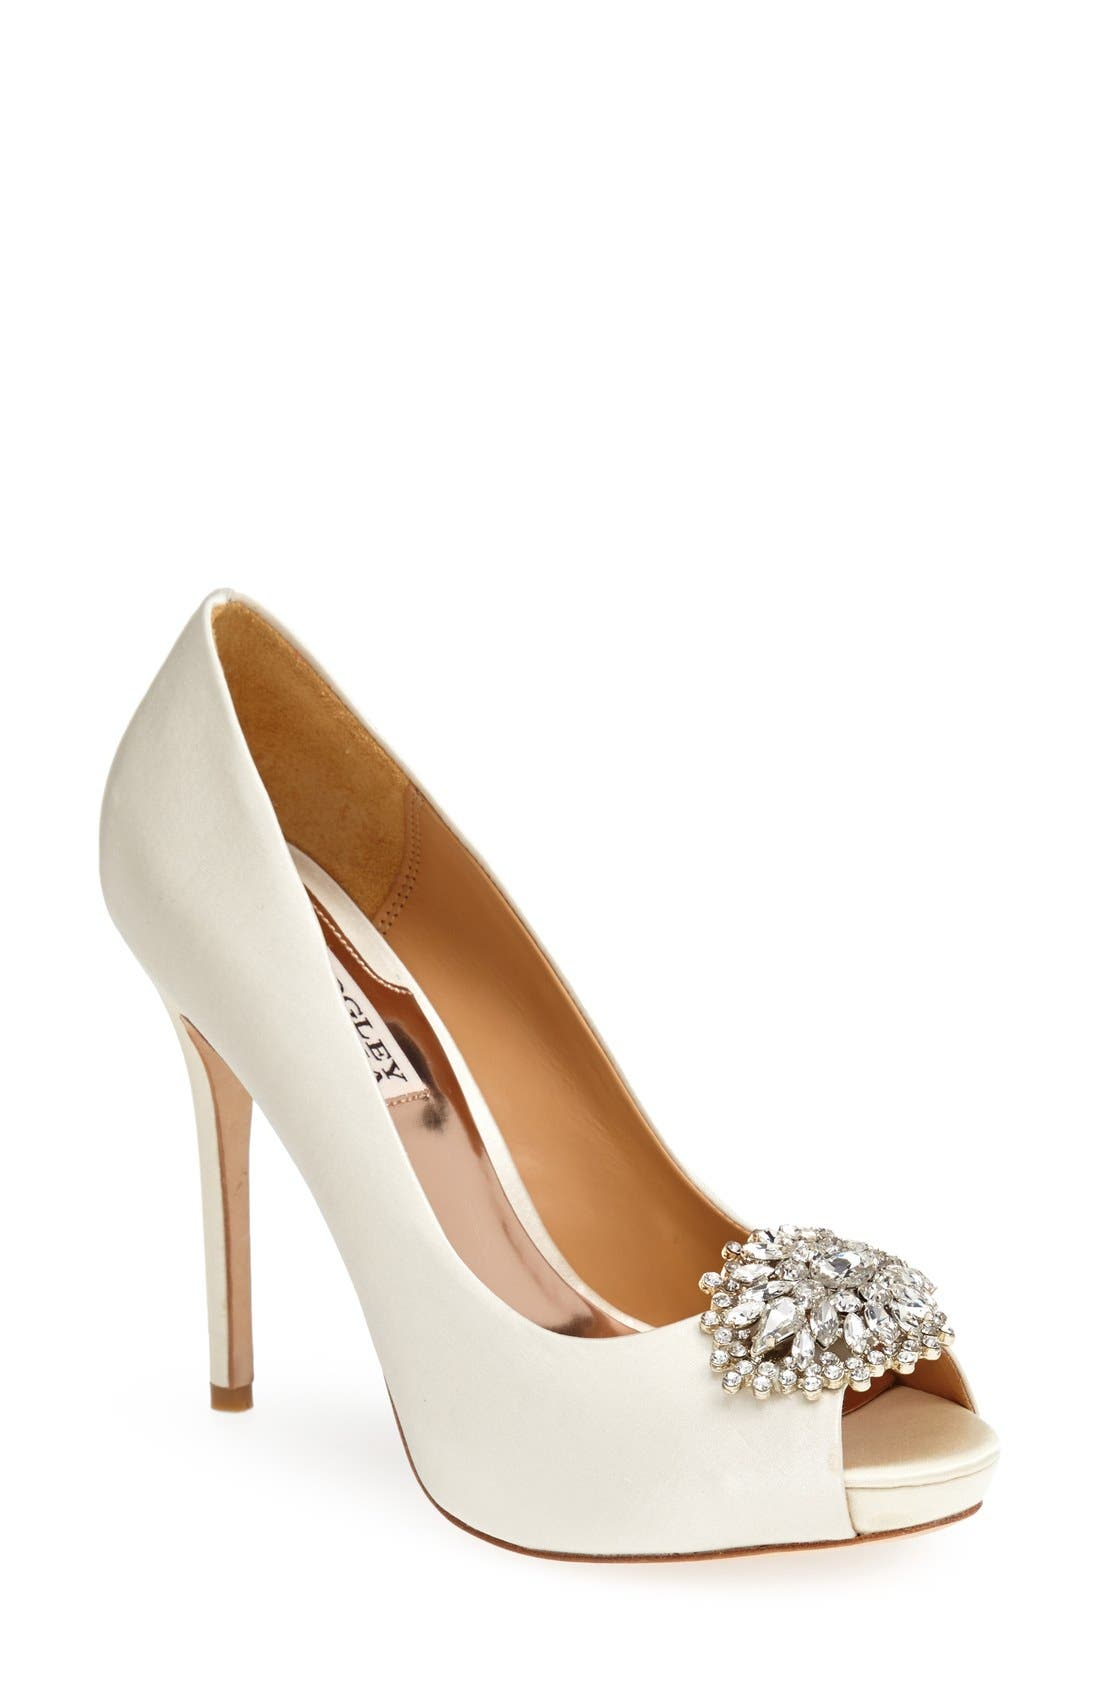 Alternate Image 1 Selected - Badgley Mischka 'Jeannie' Crystal Trim Open Toe Pump (Women)